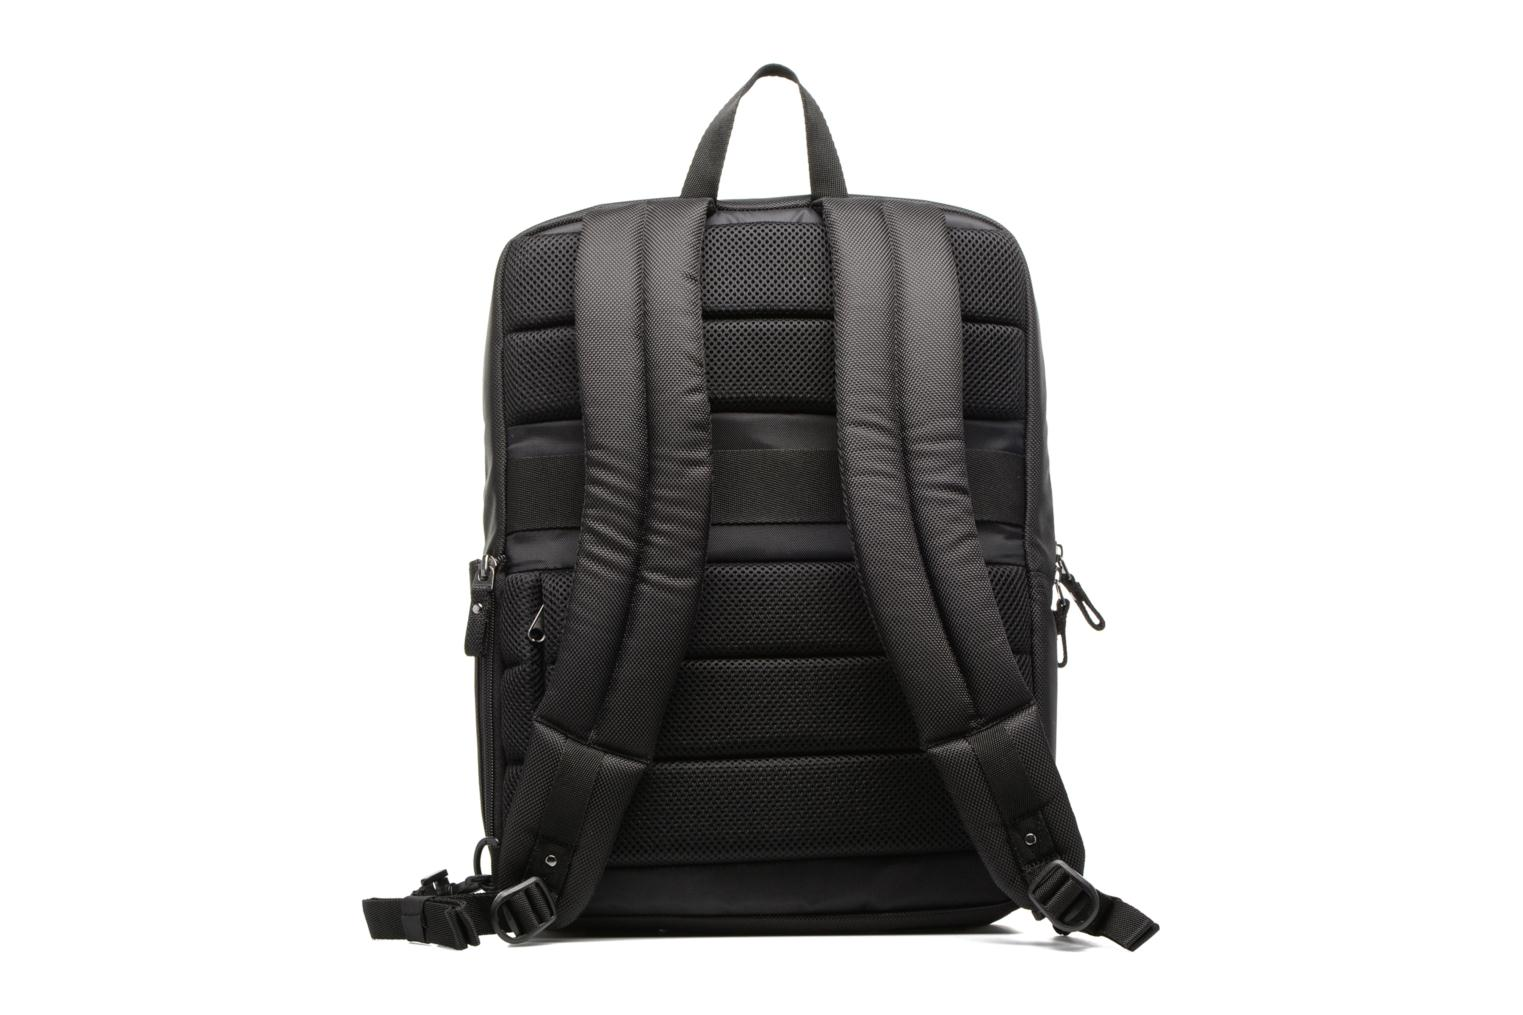 Sacs ordinateur Case Logic Case Logic Bryker 14'' Backpack Convertible Noir vue face